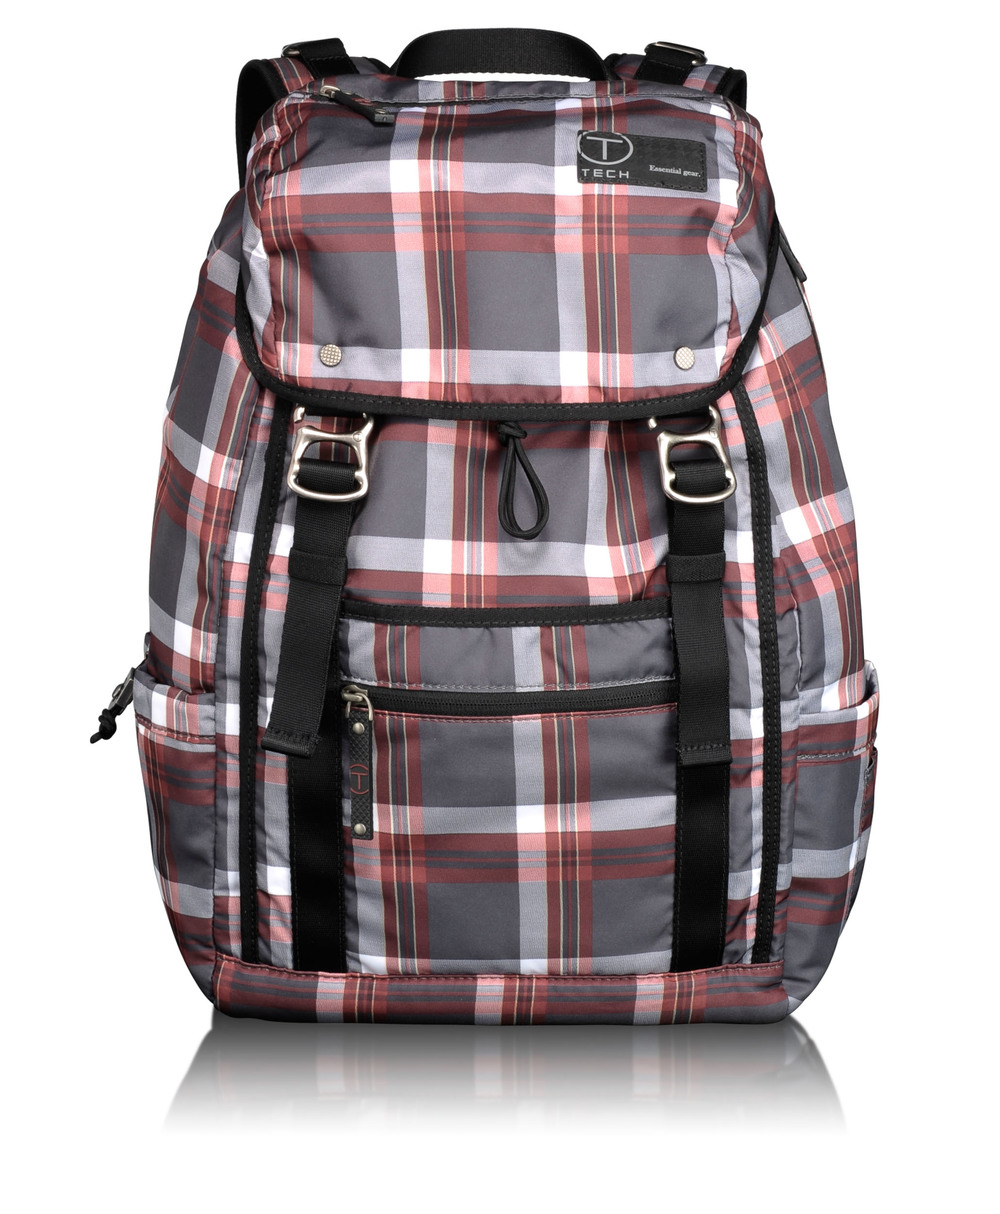 57582 Grey Plaid T-Tech Icon Glenn Rucksack.jpg